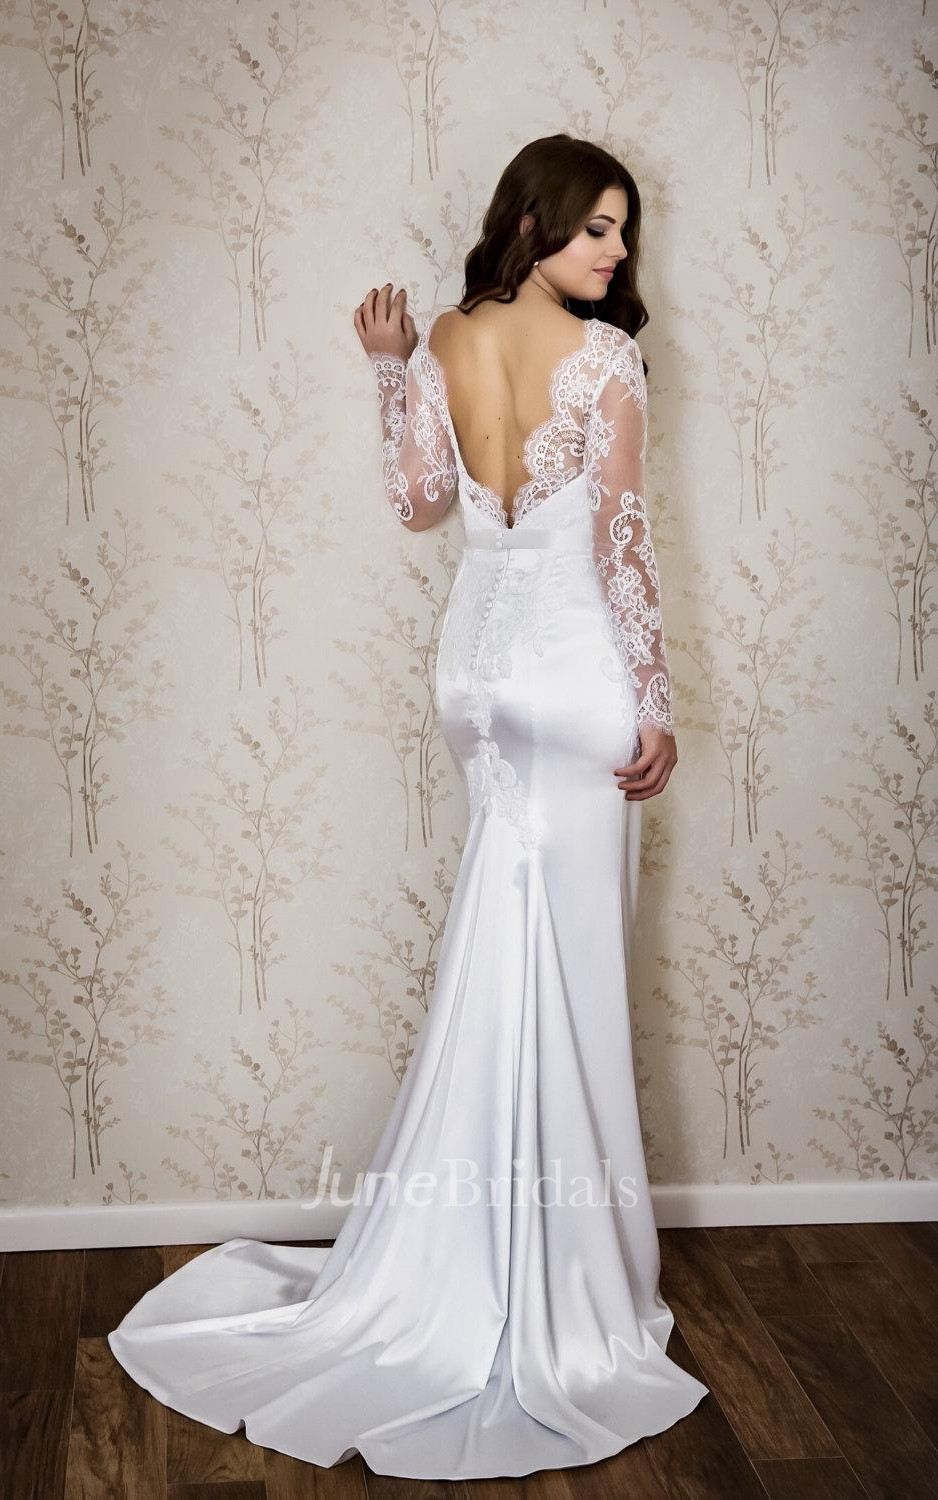 sexy mermaid wedding dresses sexy mermaid wedding dresses Sexy Bateau Neck Long Sleeve Mermaid Satin Wedding Dress With Lace